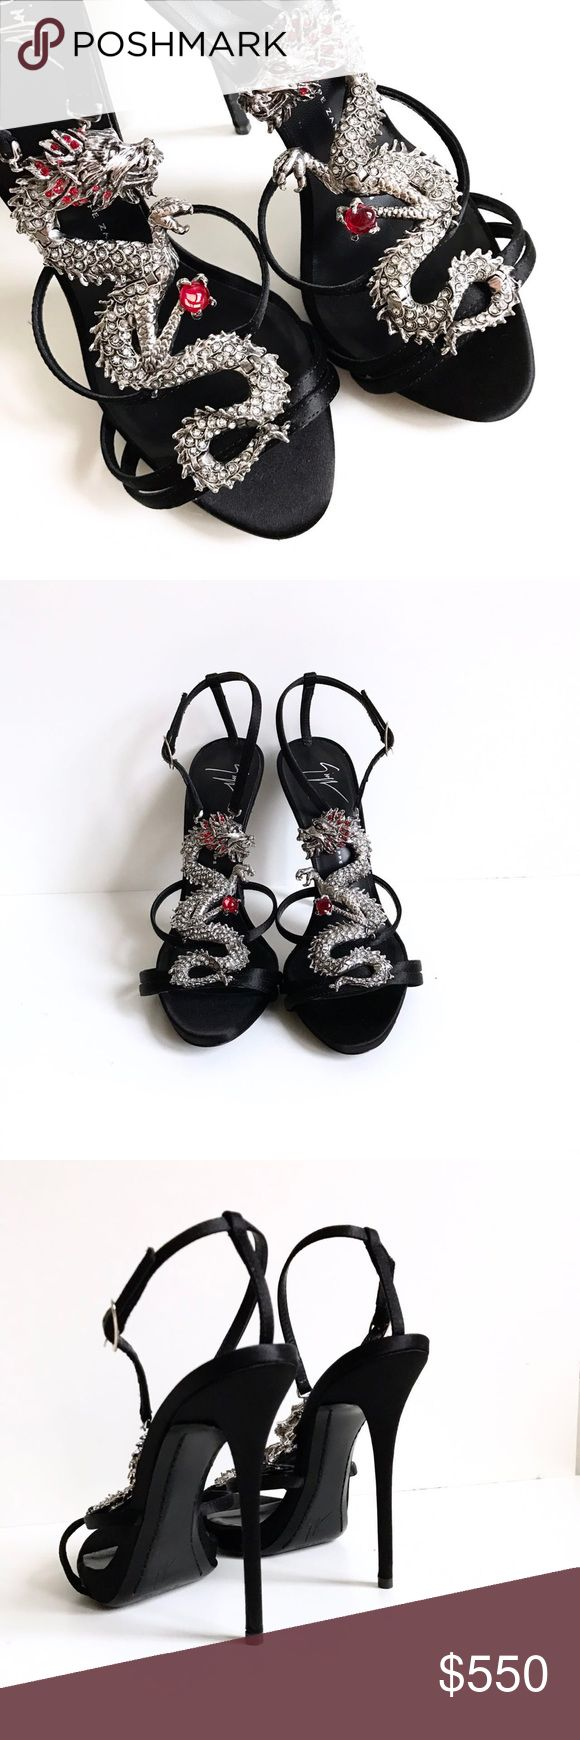 Authentic Giuseppe Zanotti Silver Dragon Heels This one is very rare and so pretty! And it is BRAND NEW with original box! Open for offer. Giuseppe Zanotti Shoes Heels #giuseppezanottiheelssilver